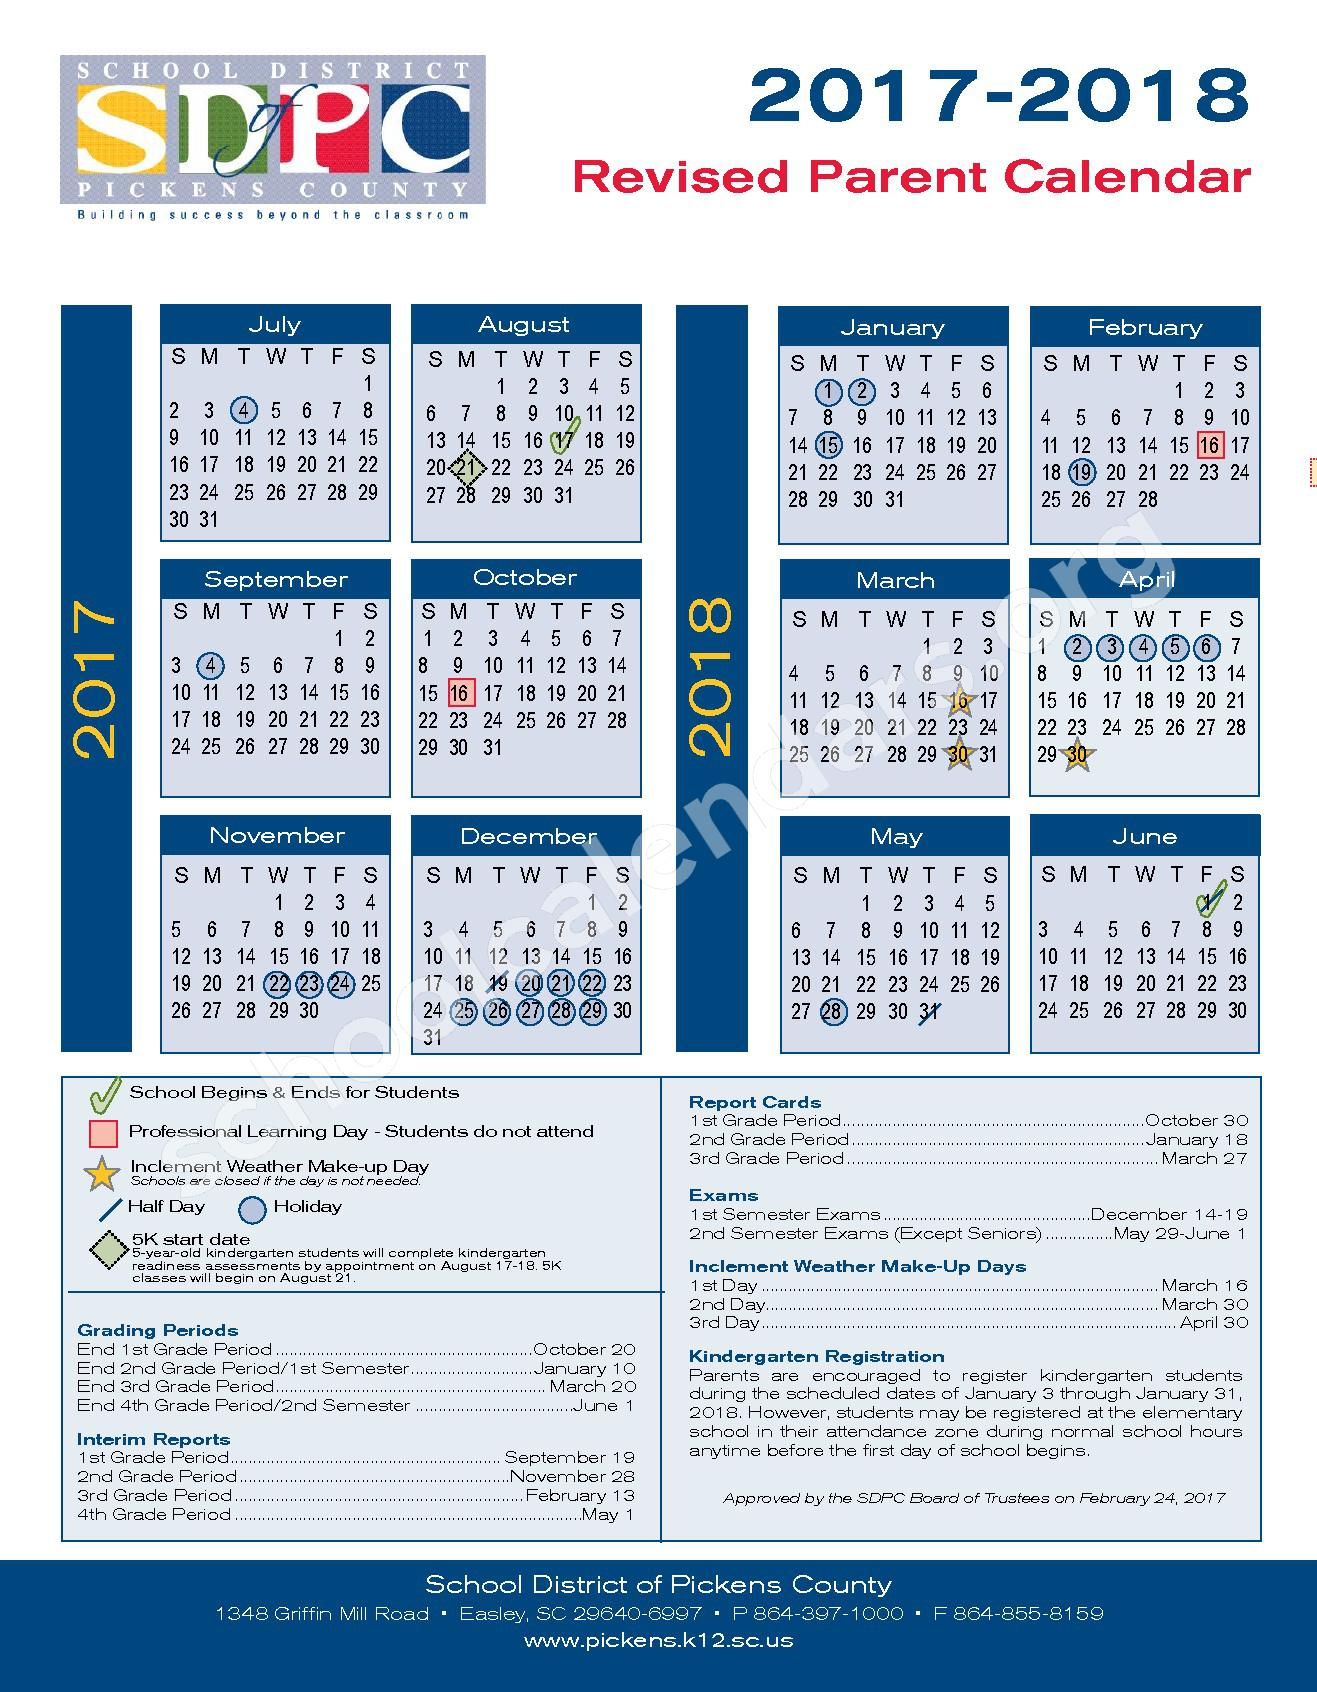 2017 - 2018 Parent Calendar – Pickens County School District  – page 1